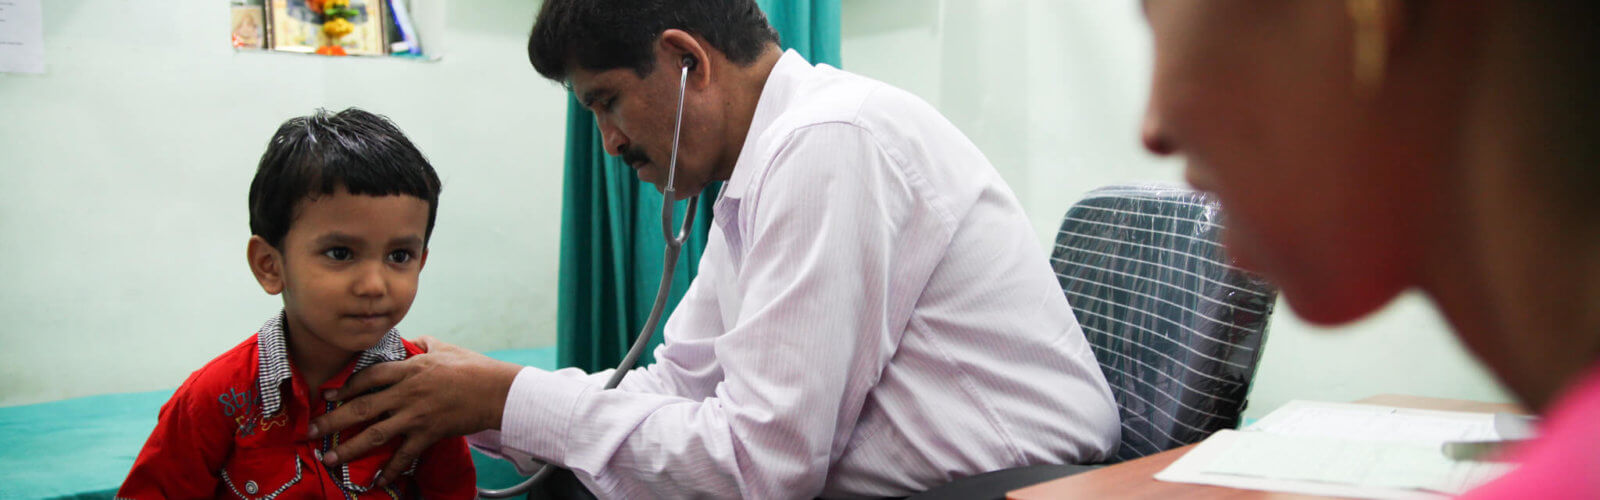 Swasth Health Clinic ©Center for Health Market Innovations/R4D